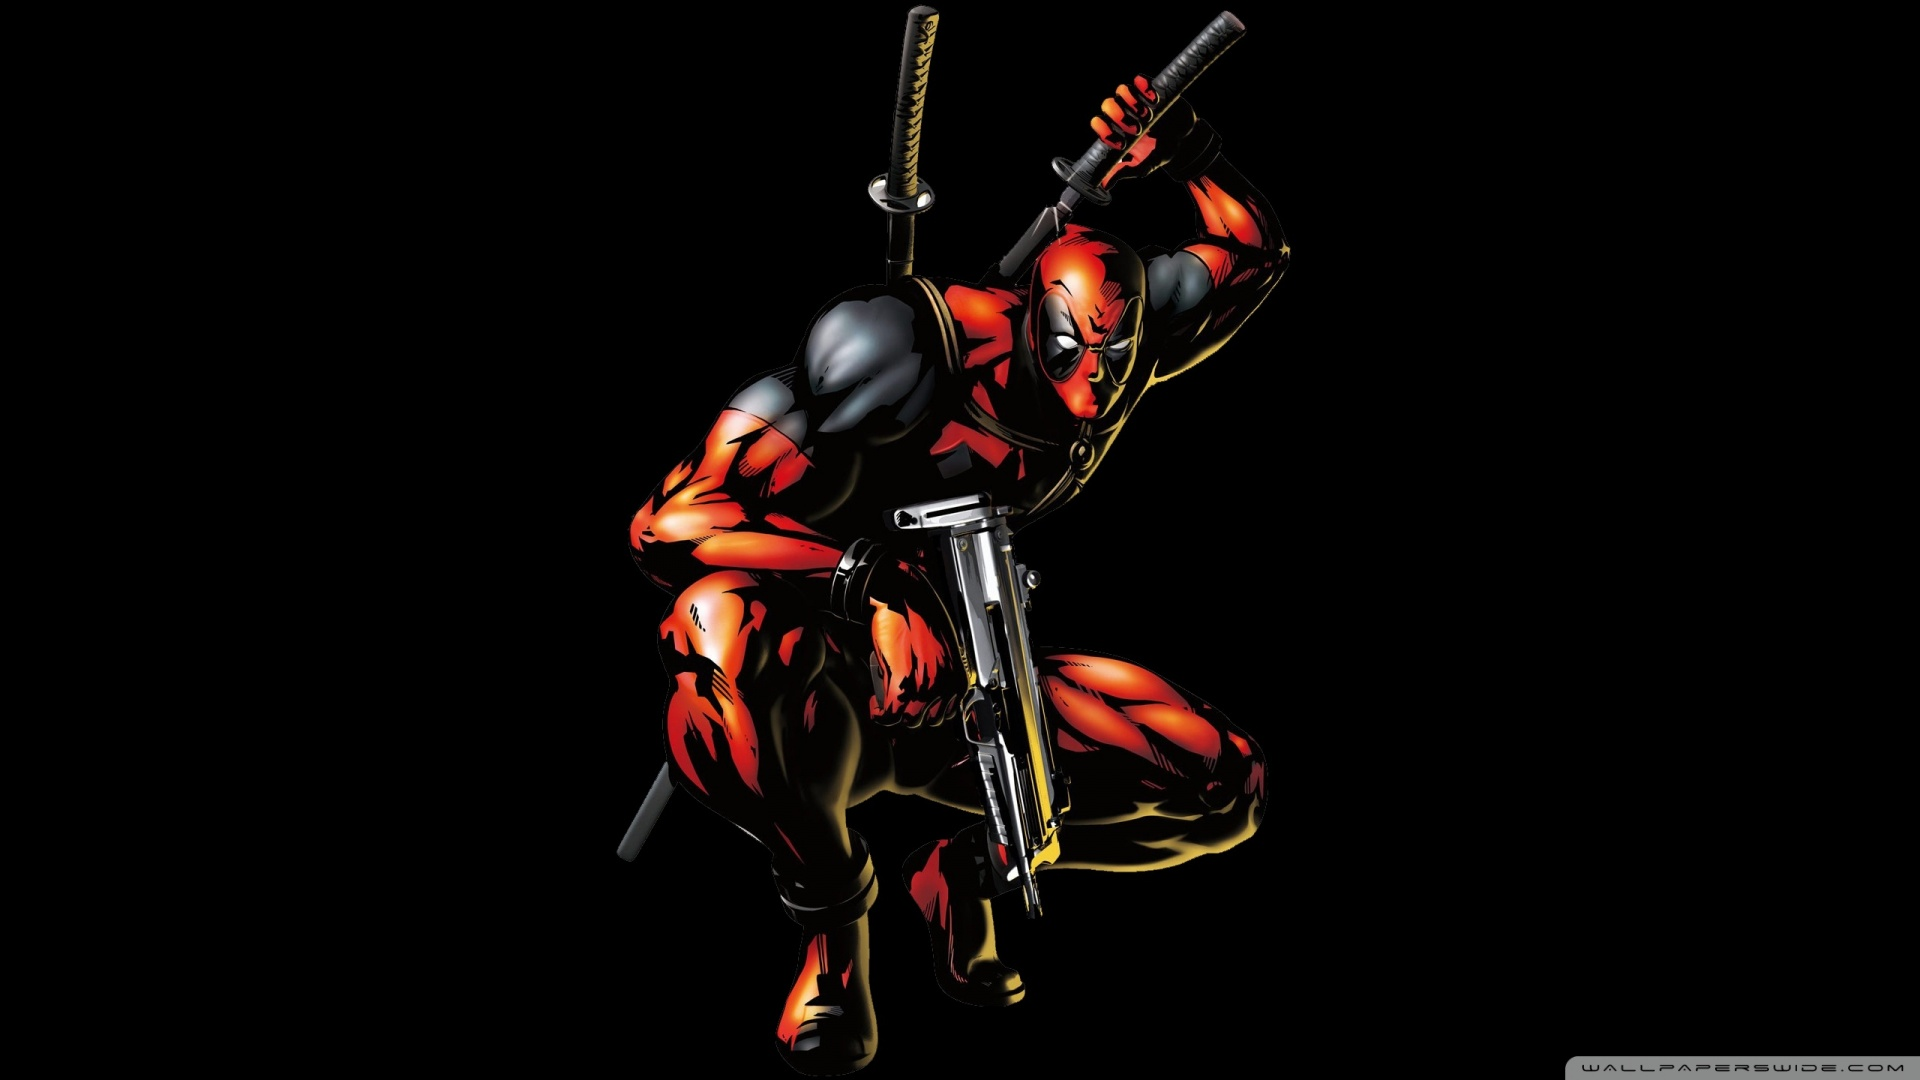 Deadpool Wallpaper 1920x1080 Hd 1920x1080 deadpool cartoon 1920x1080